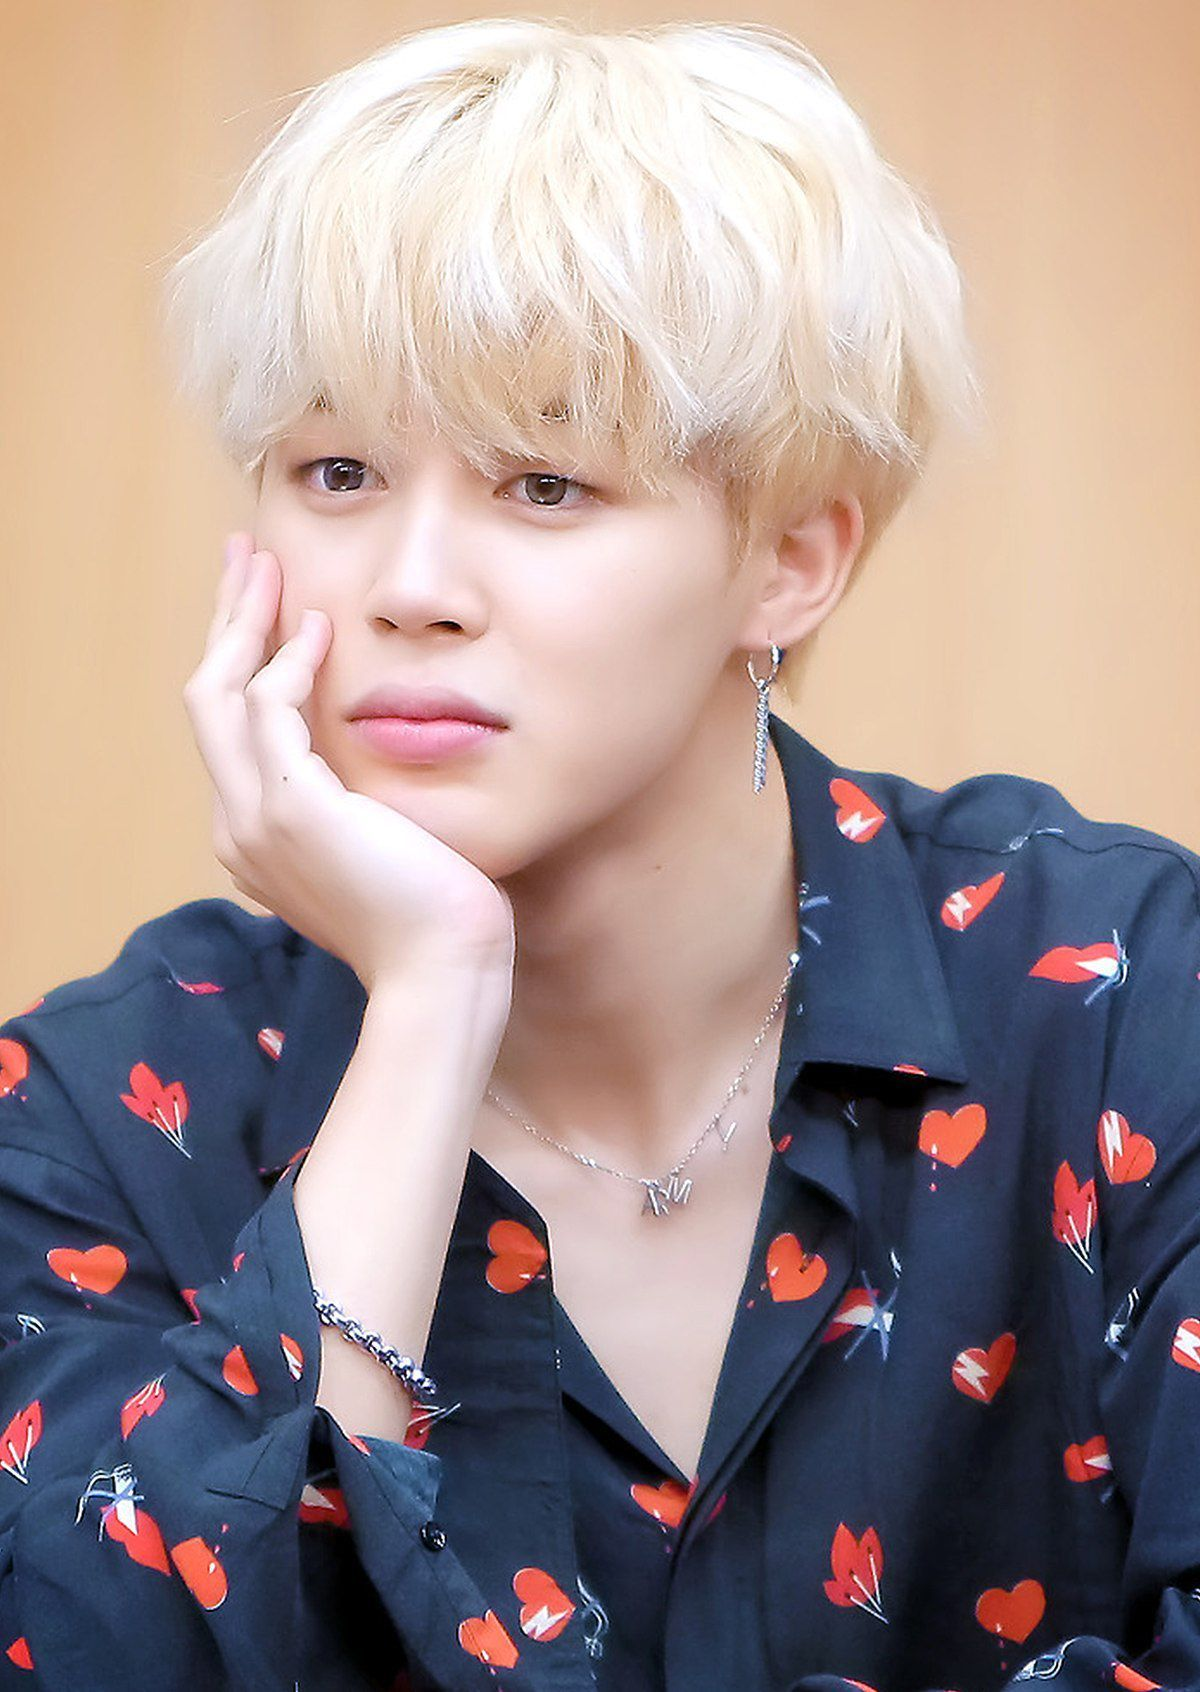 Wattpad Fanfiction In Which A Kpop Idol Falls In Love With A Much Younger Idol A Park Jimin Fanfiction Bts This Is My First B Bts Jimin Jimin Park Jimin